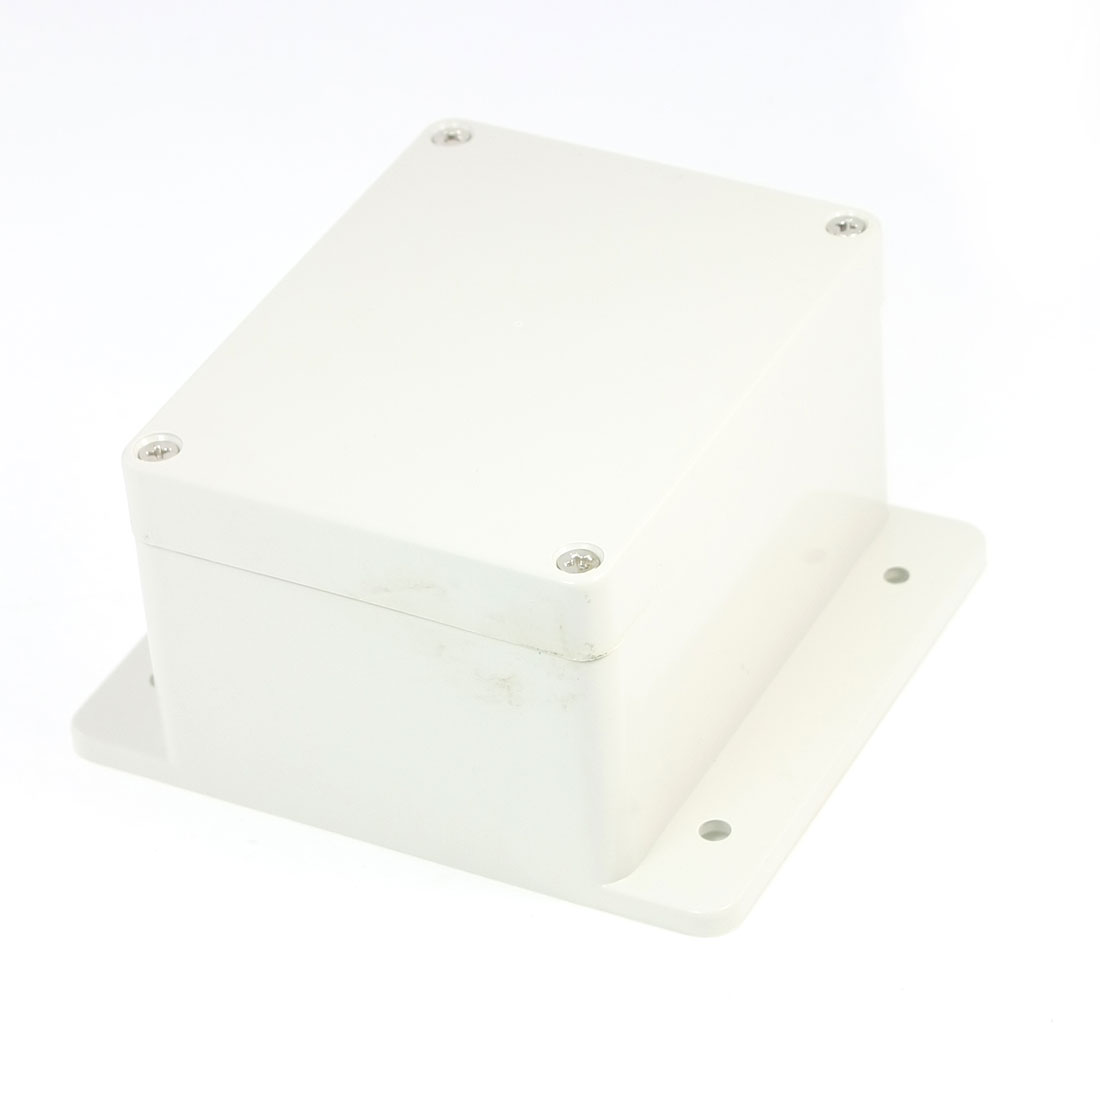 115mm x 90mm x 70mm Waterproof Plastic Enclosure Case DIY Junction Box